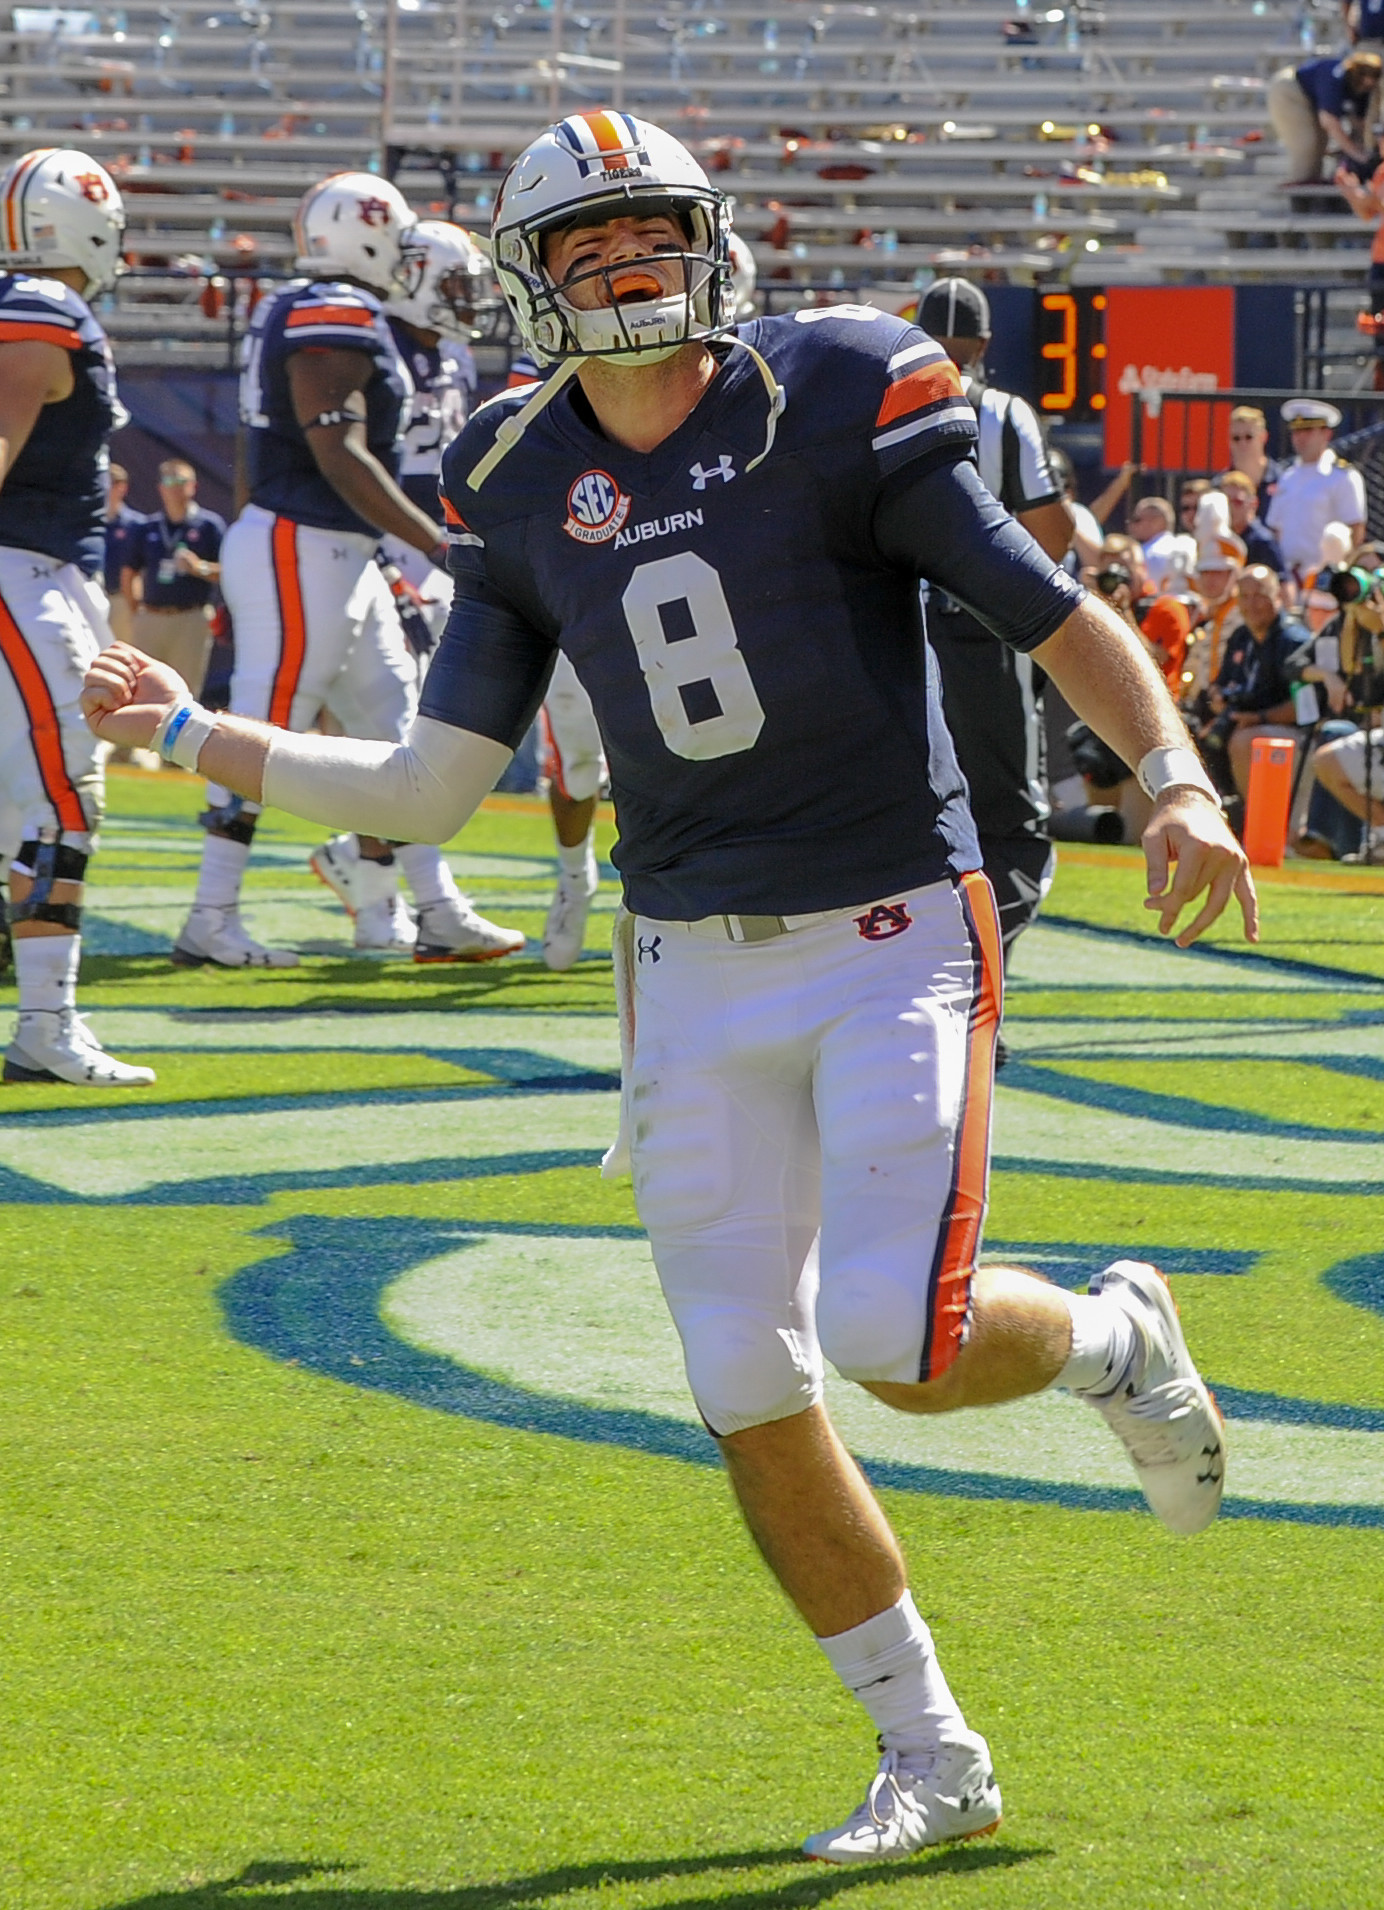 Auburn Tigers quarterback Jarrett Stidham (8) celebrates after throwing a touchdown pass during the first half of Saturday's game, at Jordan-Hare Stadium in Auburn, AL. Daily Mountain Eagle -  Jeff Johnsey